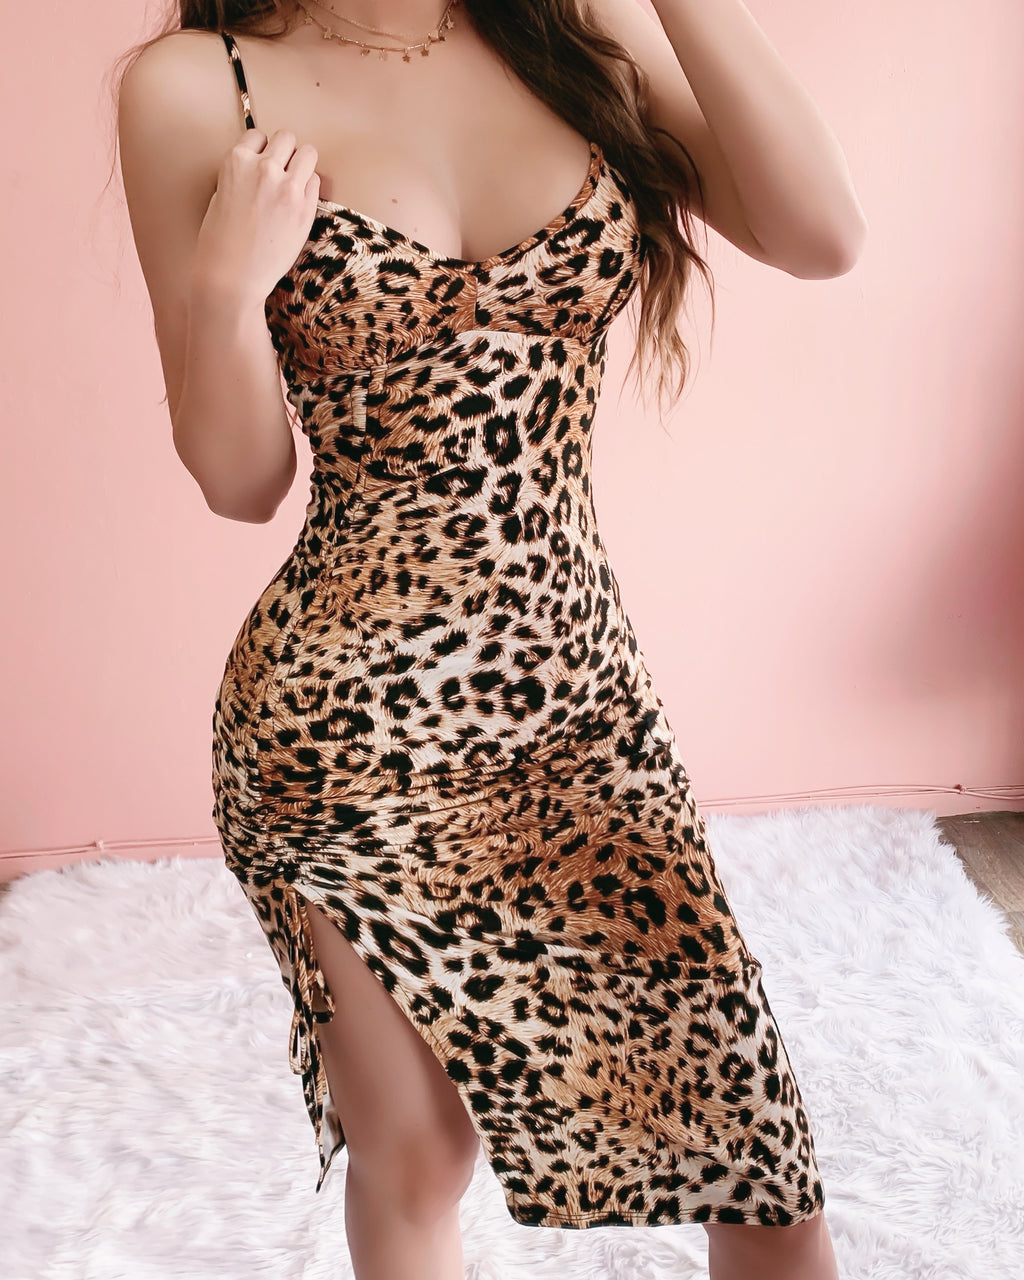 EYES ON ME CHEETAH DRESS